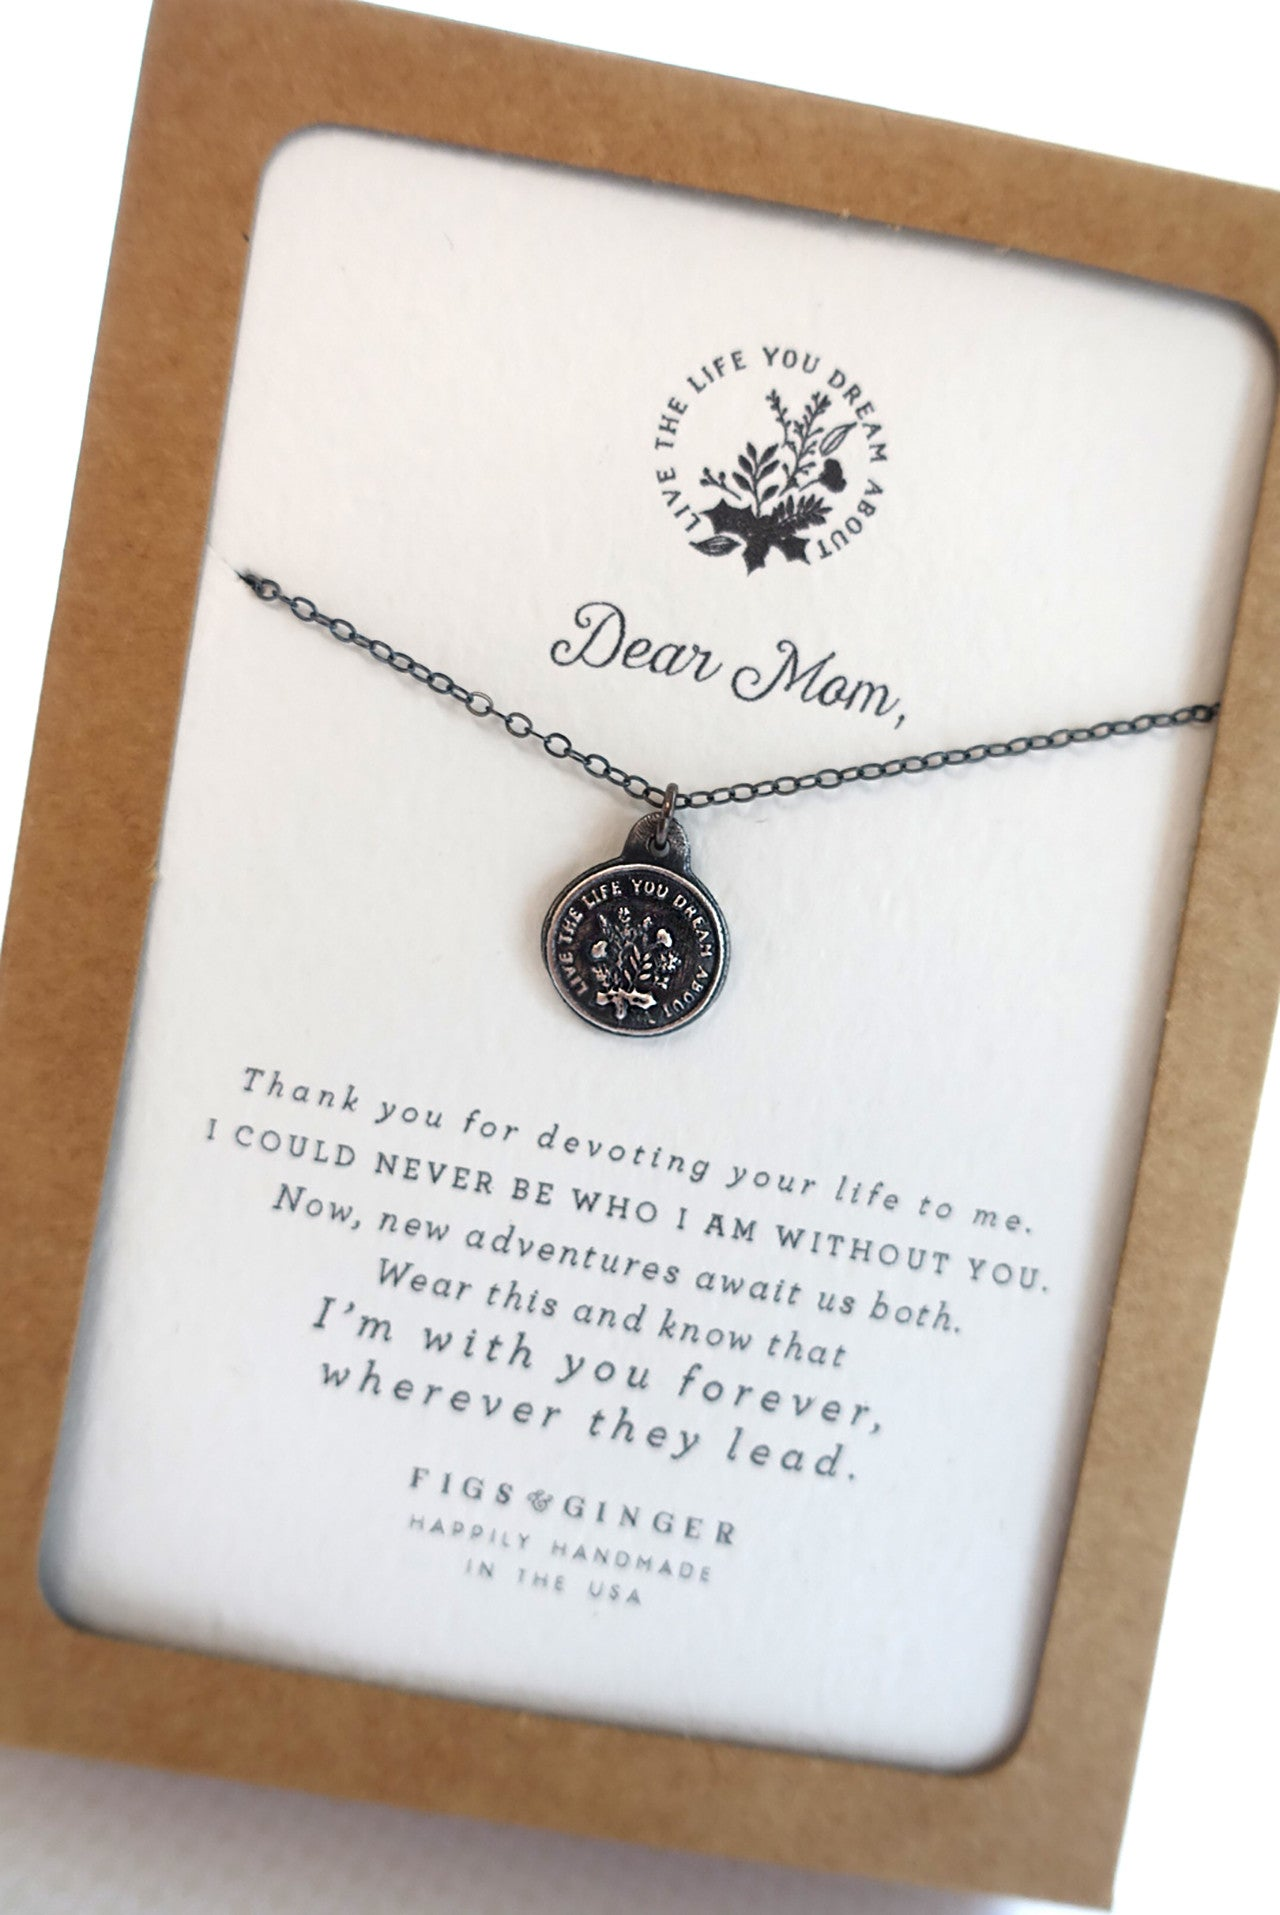 Dear Mom: Live the Life you Dream Necklace